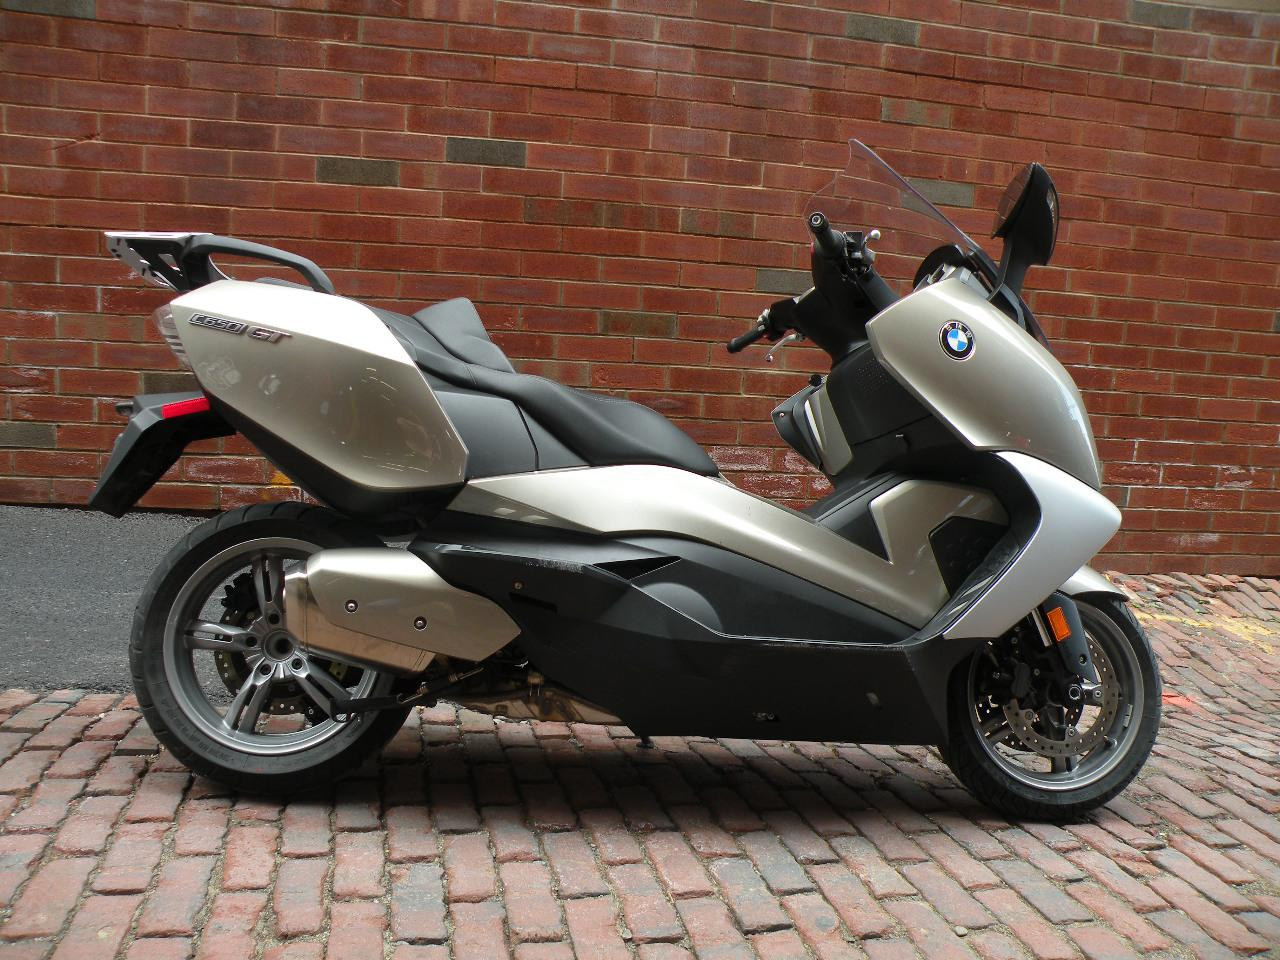 2013 BMW C650 GT Automatic Scooter, motorcycle listing